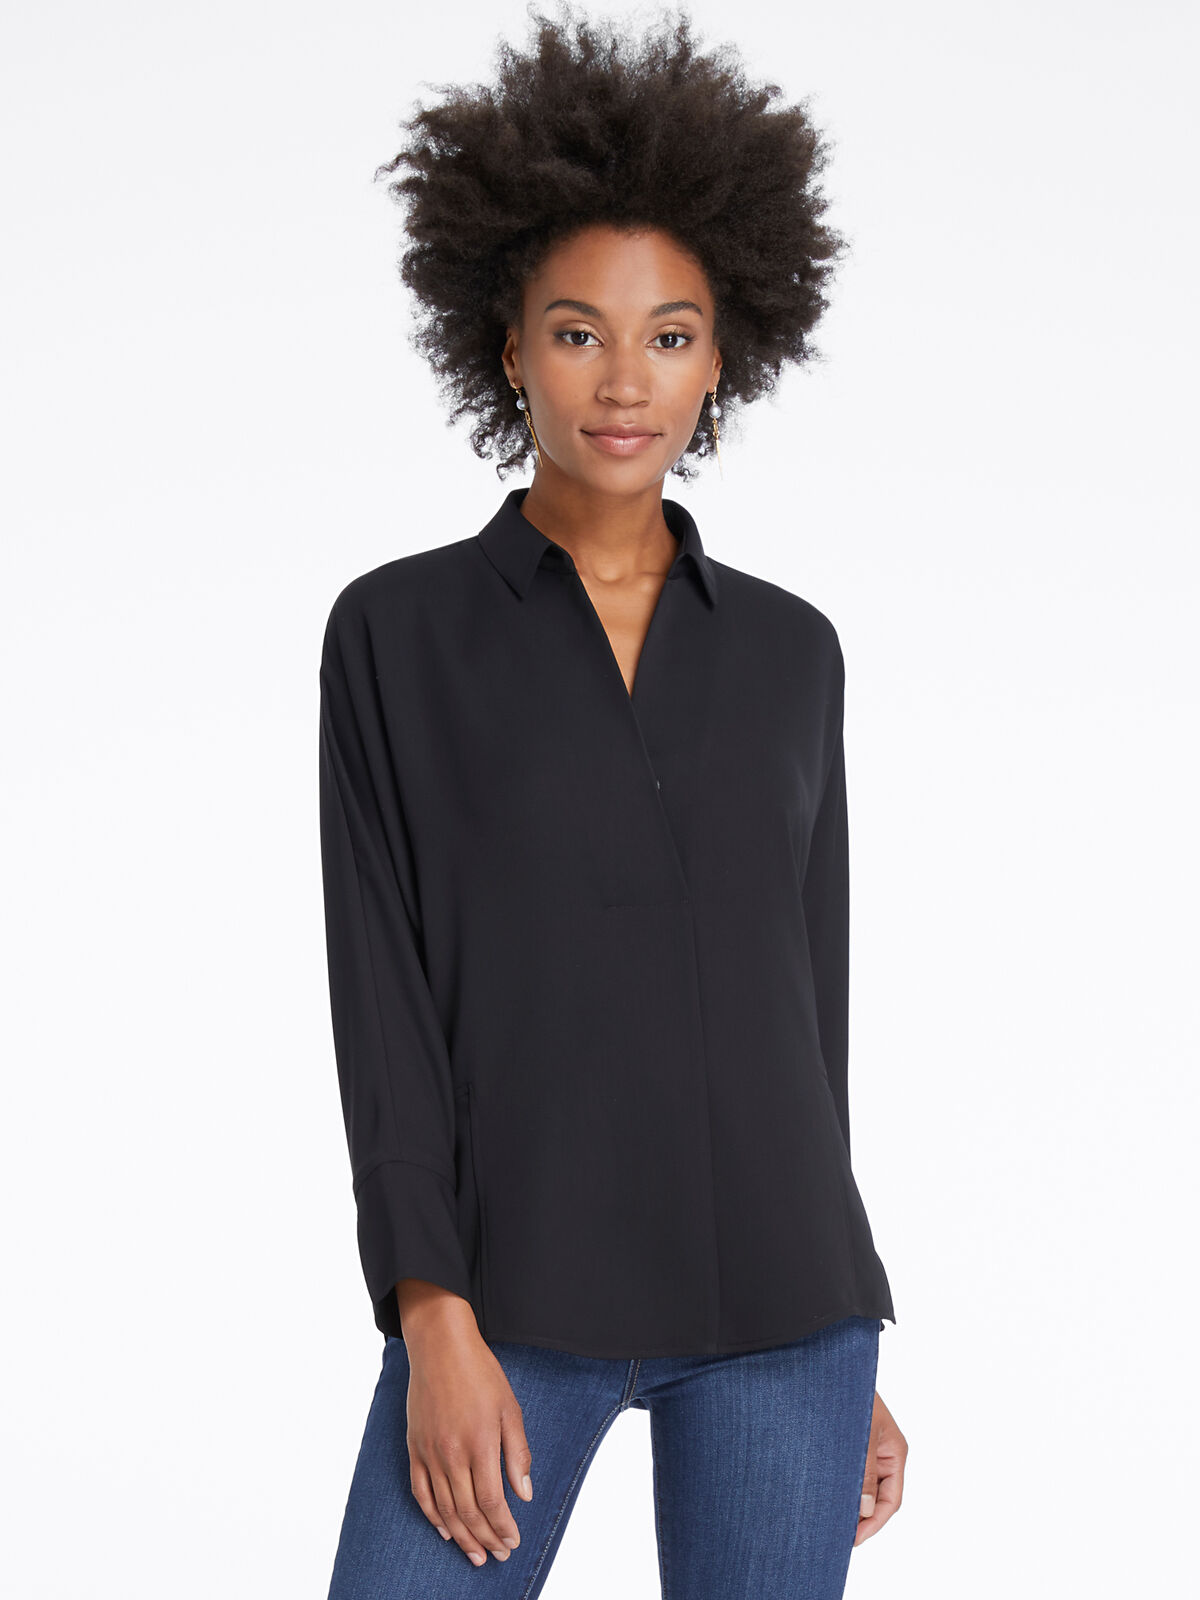 Flowing Ease Blouse